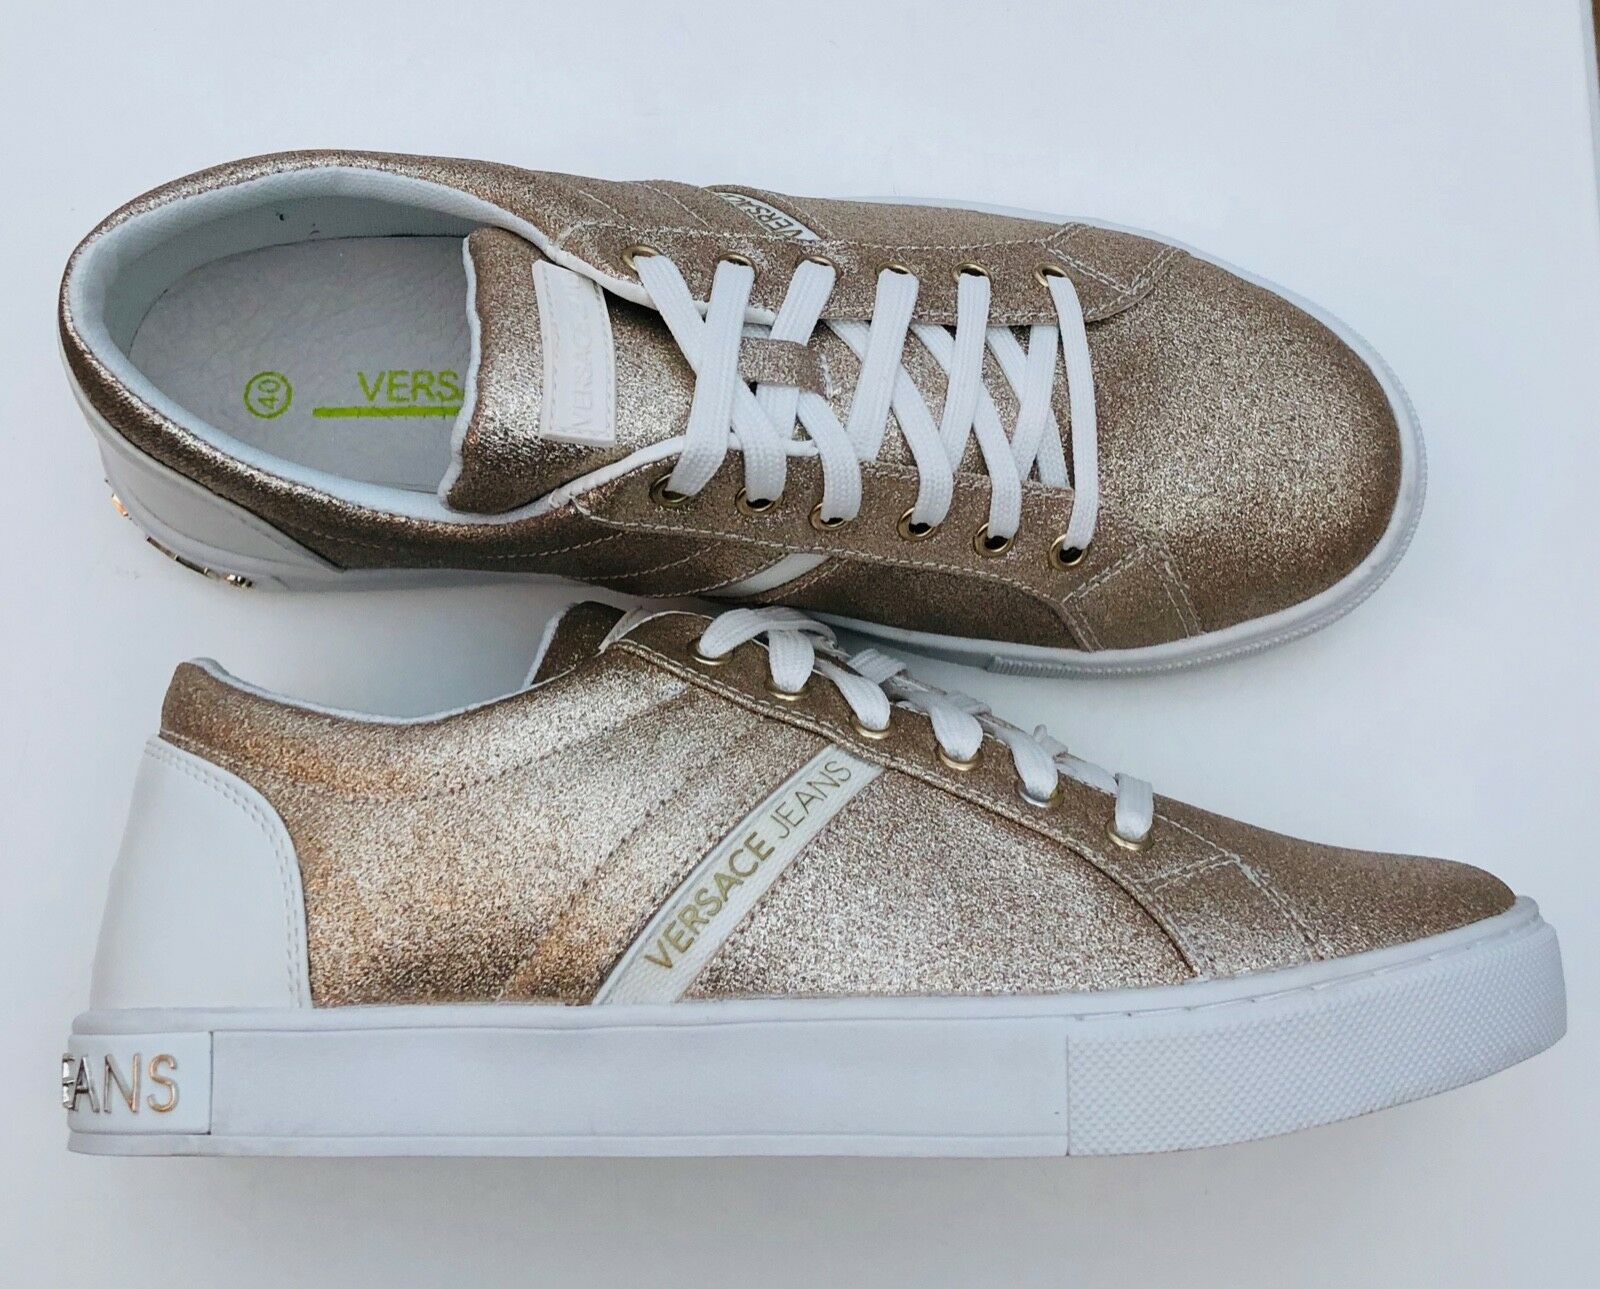 VERSACE JEANS pink gold Glitter Plimsolls Trainers Sizes BNWT BOX